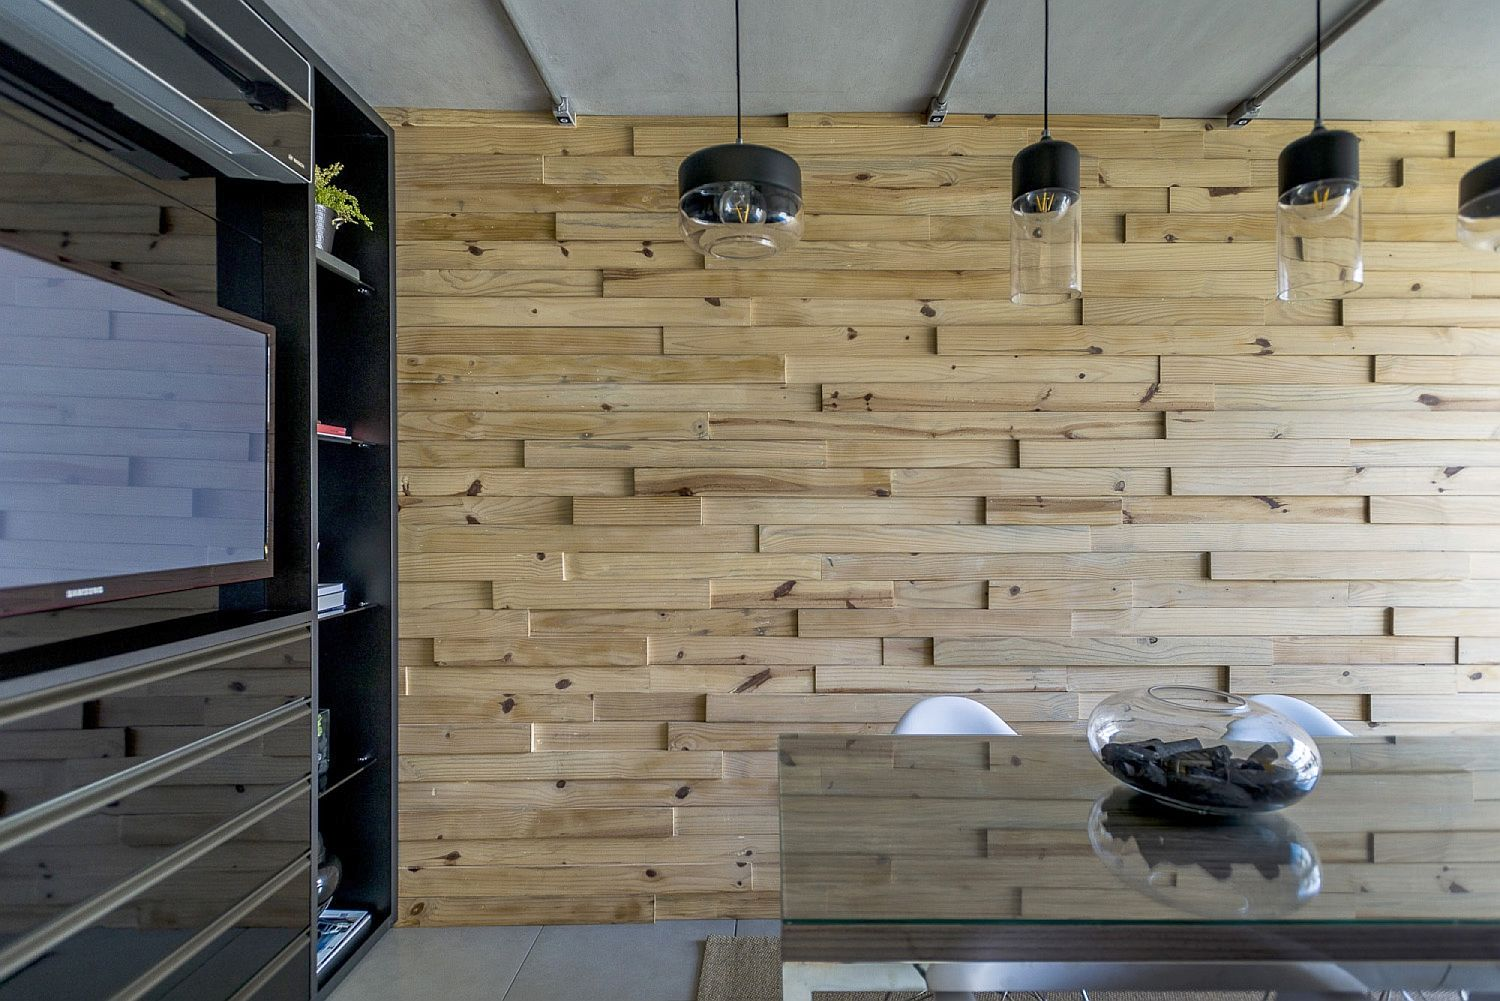 Wooden wall brings warmth to the office in steel